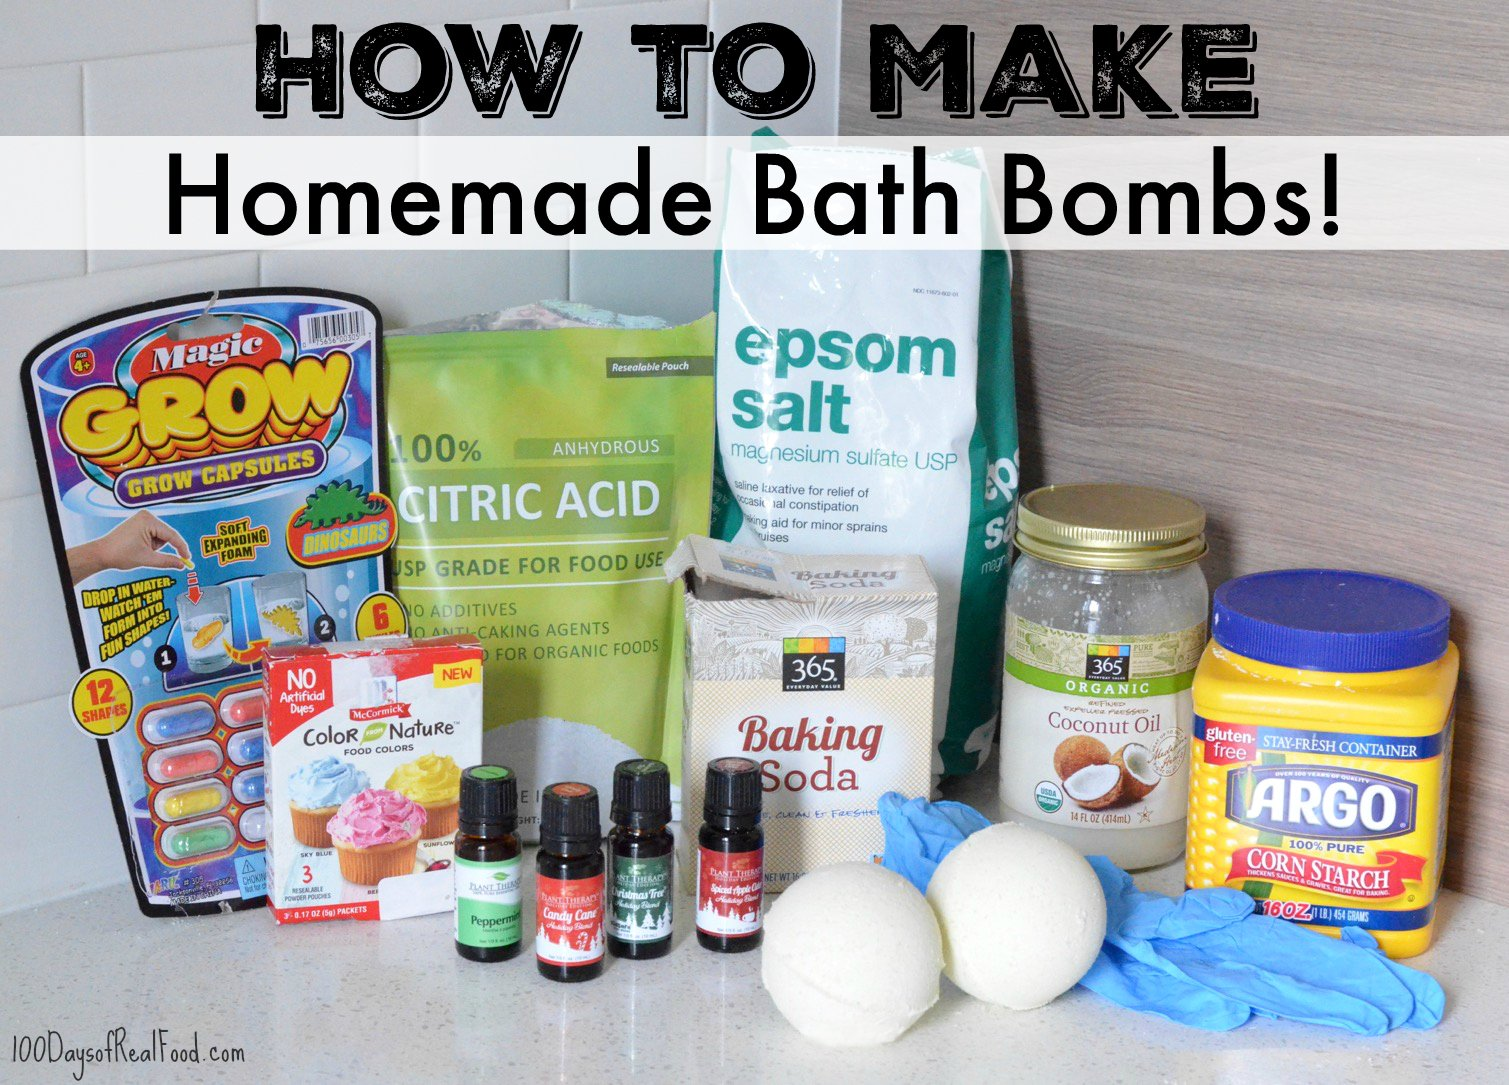 Ingredients for homemade bath bombs